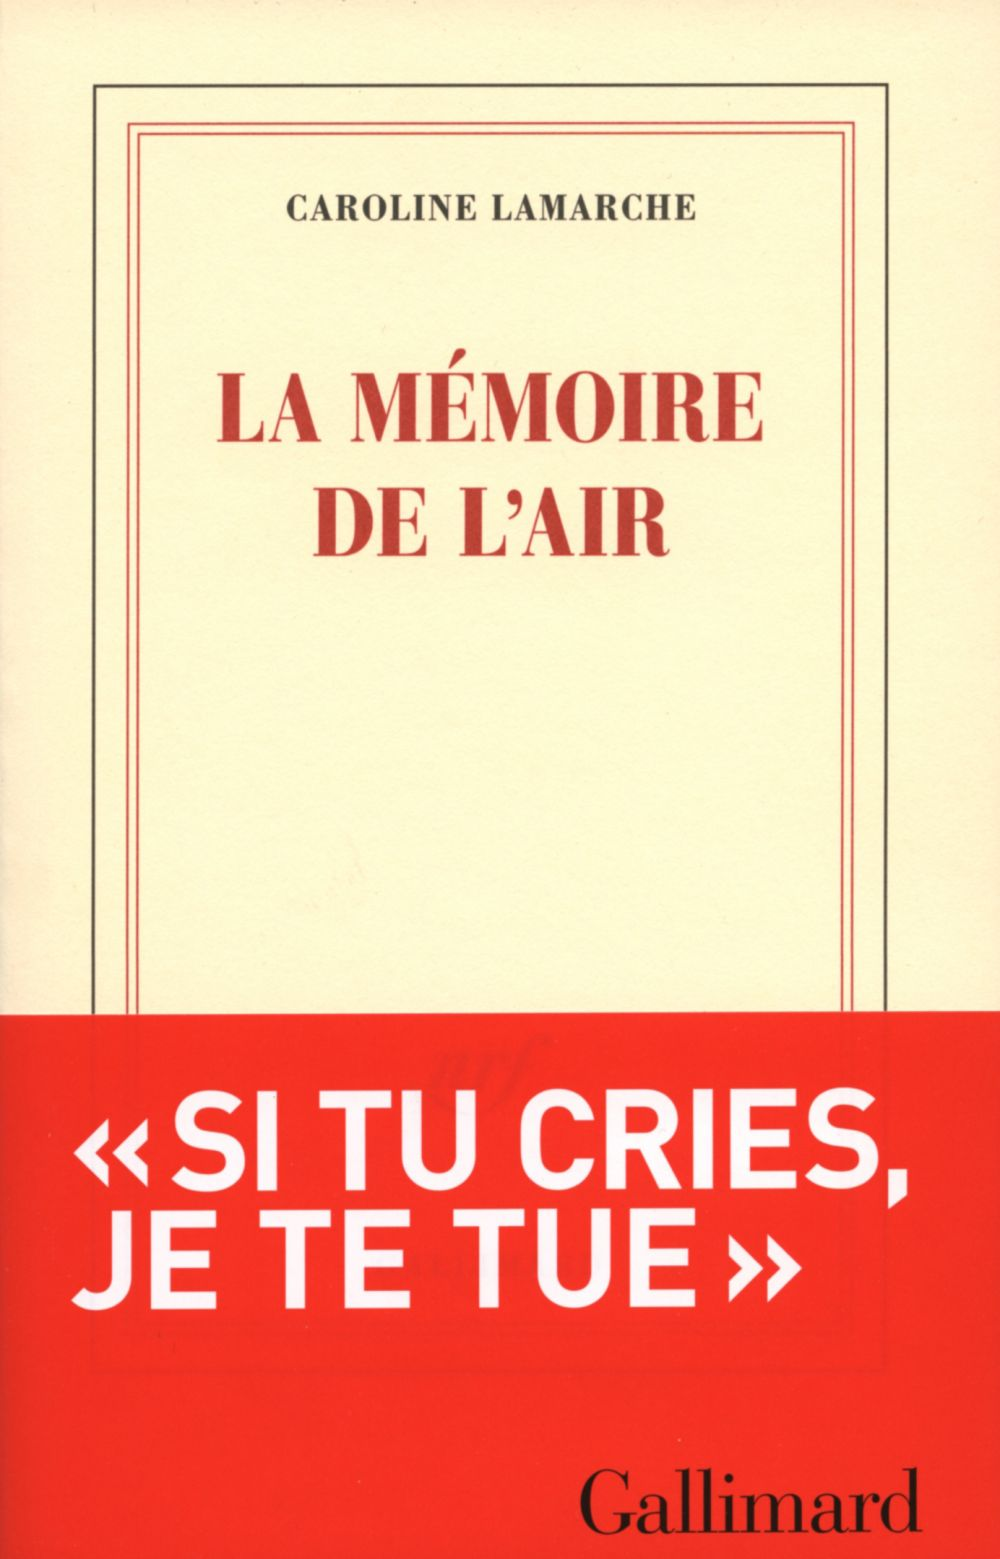 La mémoire de l'air